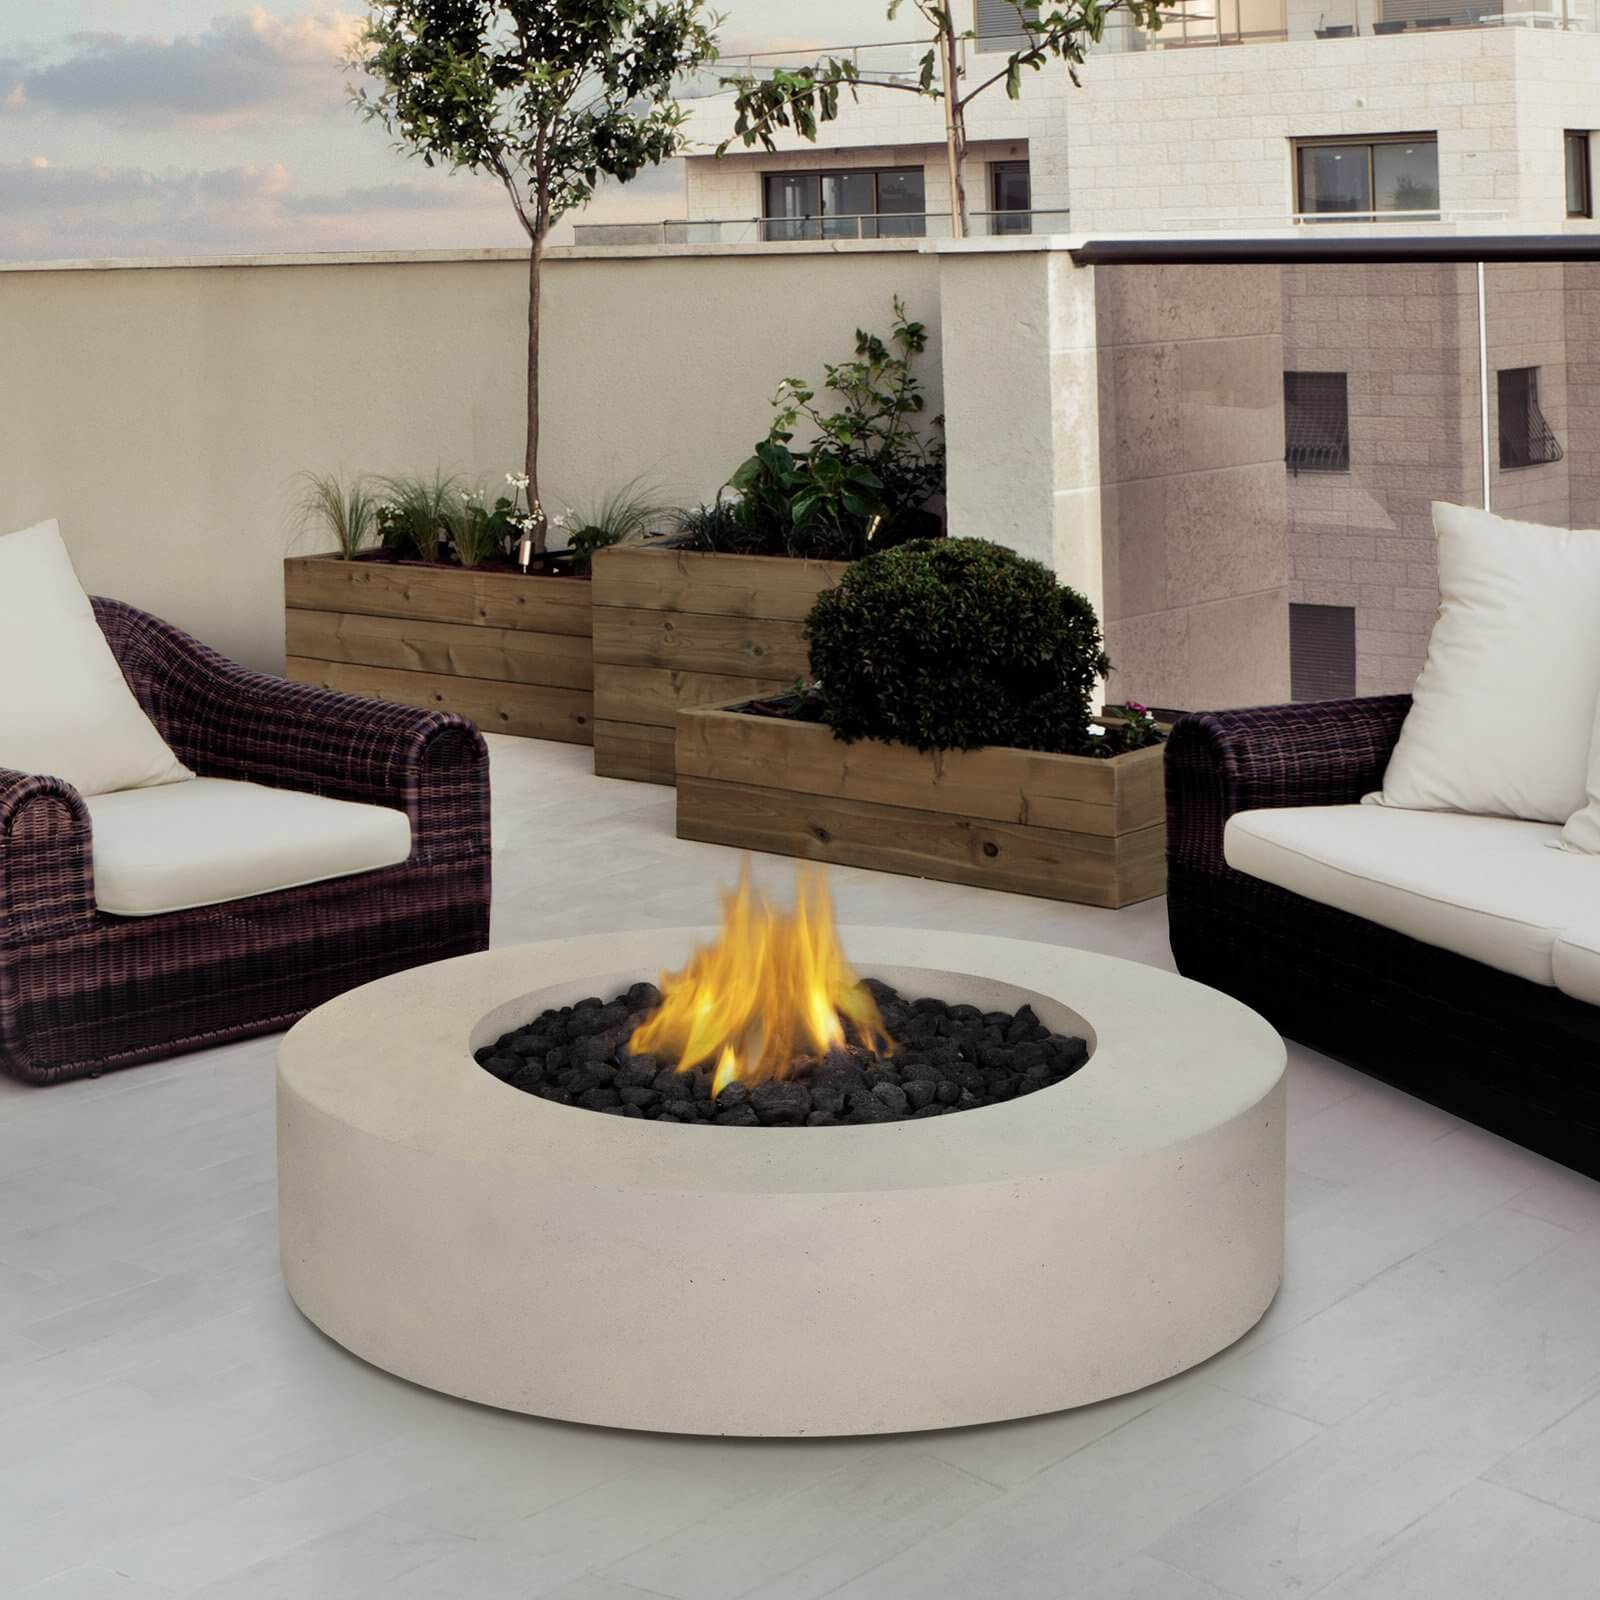 Impressive Fire Pit N Why Not Get This Marble Types Table Propane Fire Pit Table Cover Propane Fire Pit Table Walmart Propane Patio Fire Pits Want A houzz-03 Propane Fire Pit Table